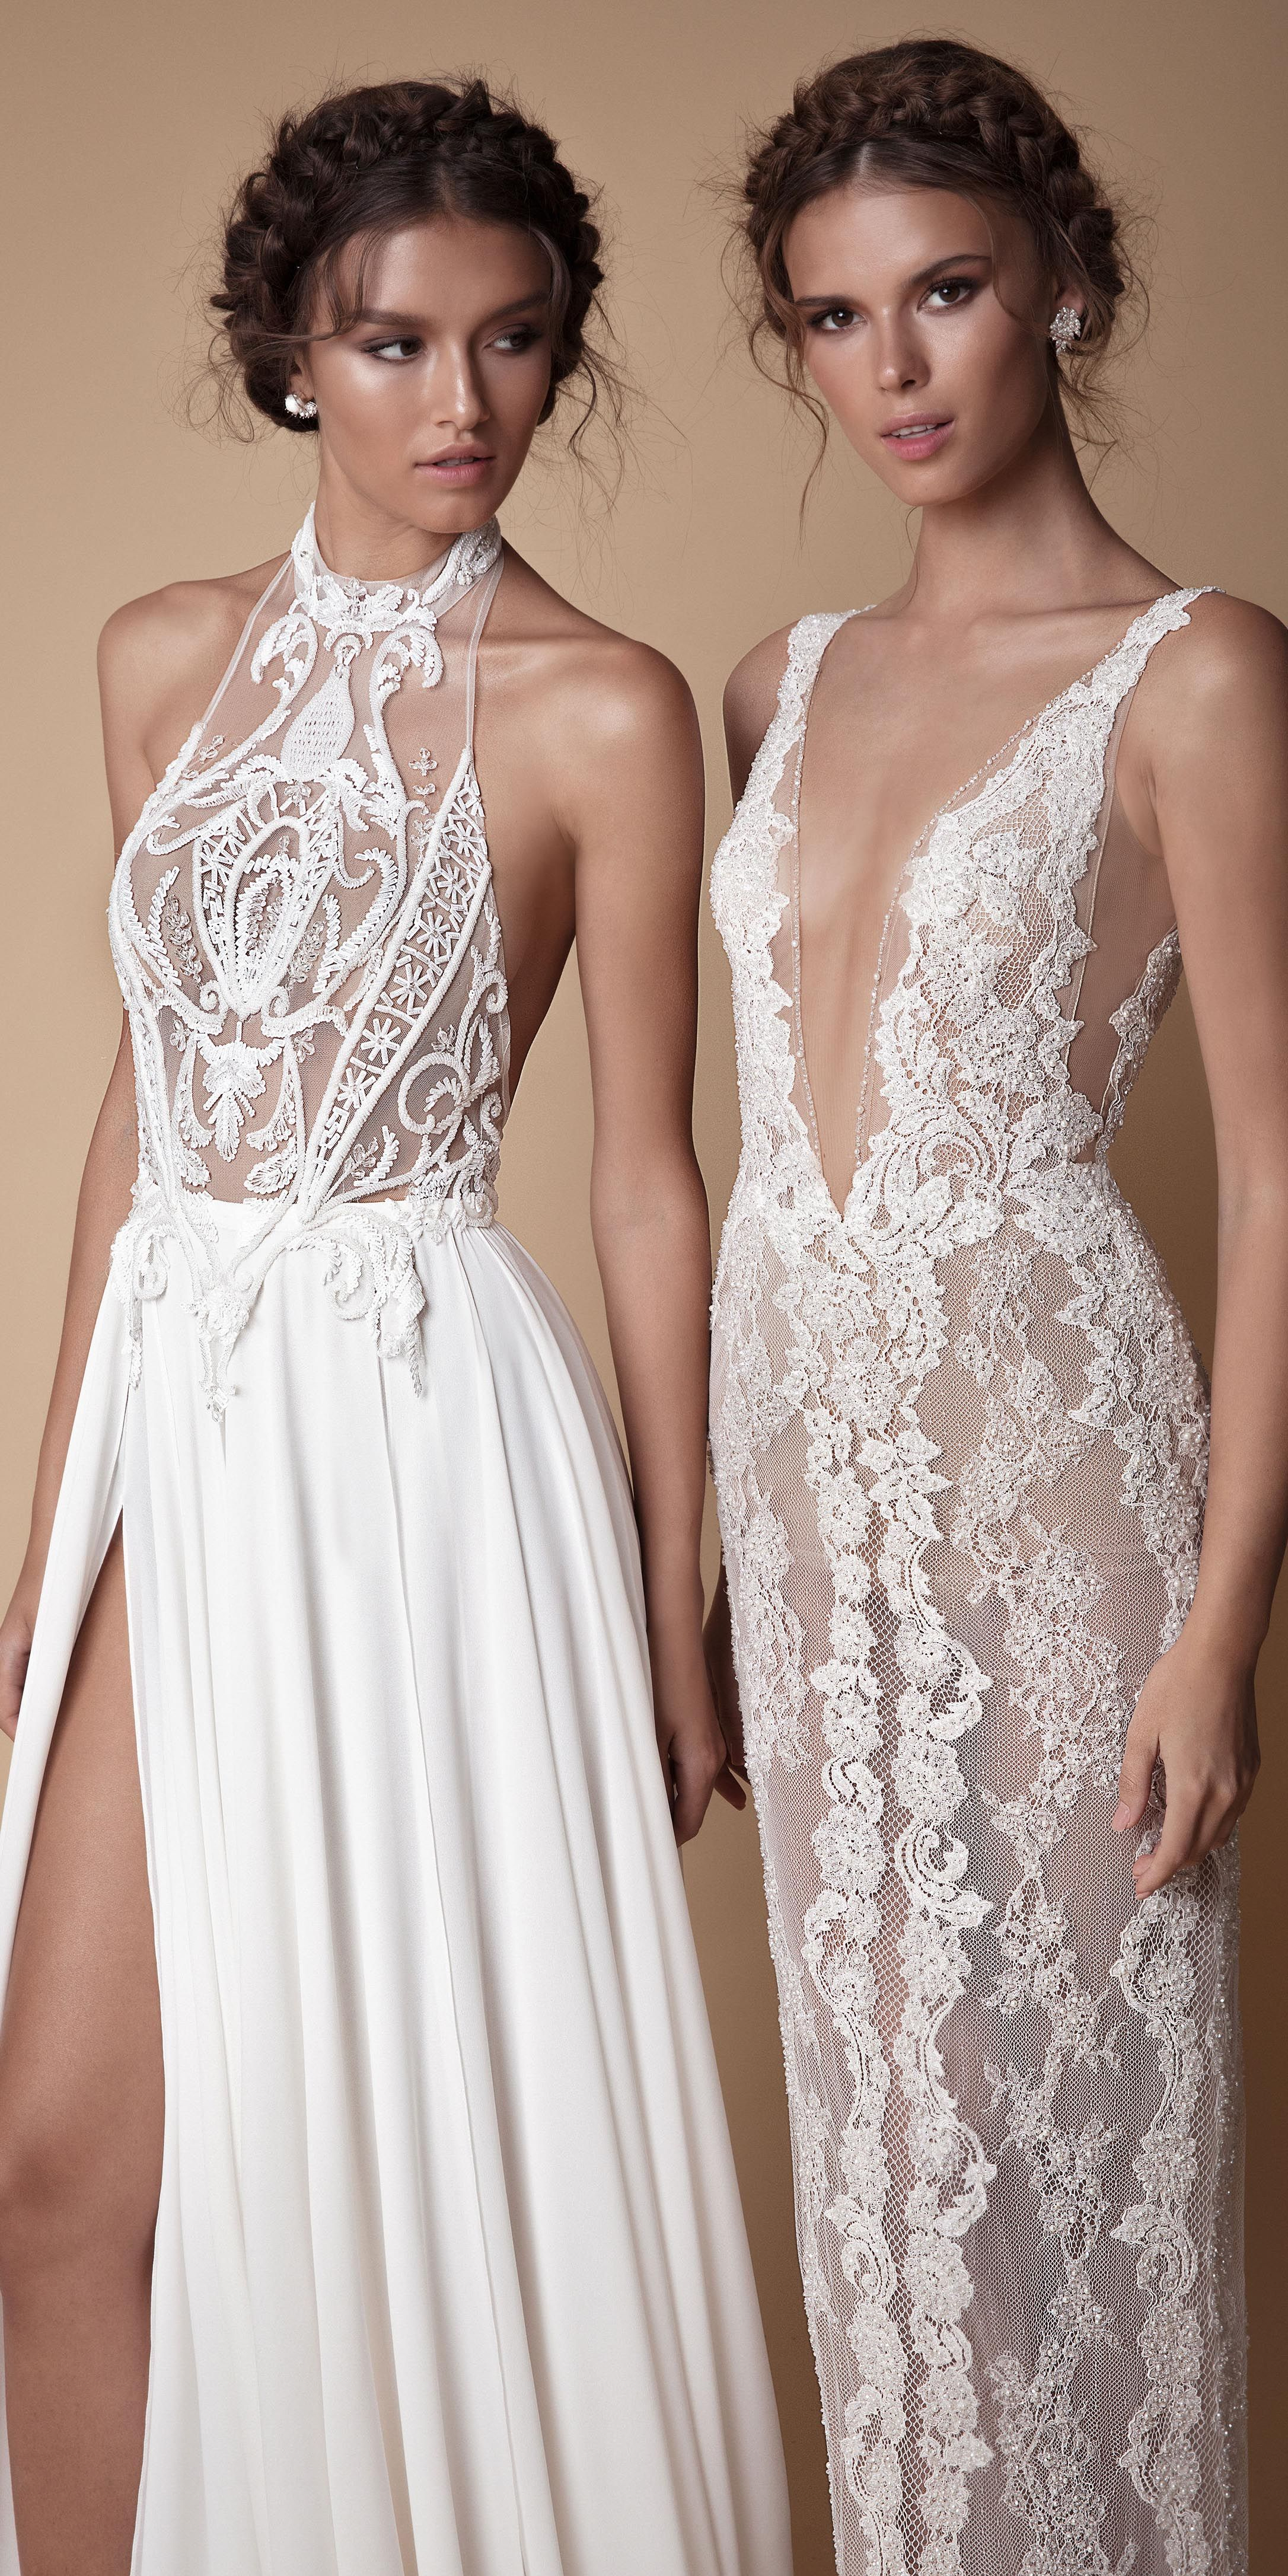 Berta Muse Collection Bertabridal Weddingdresses